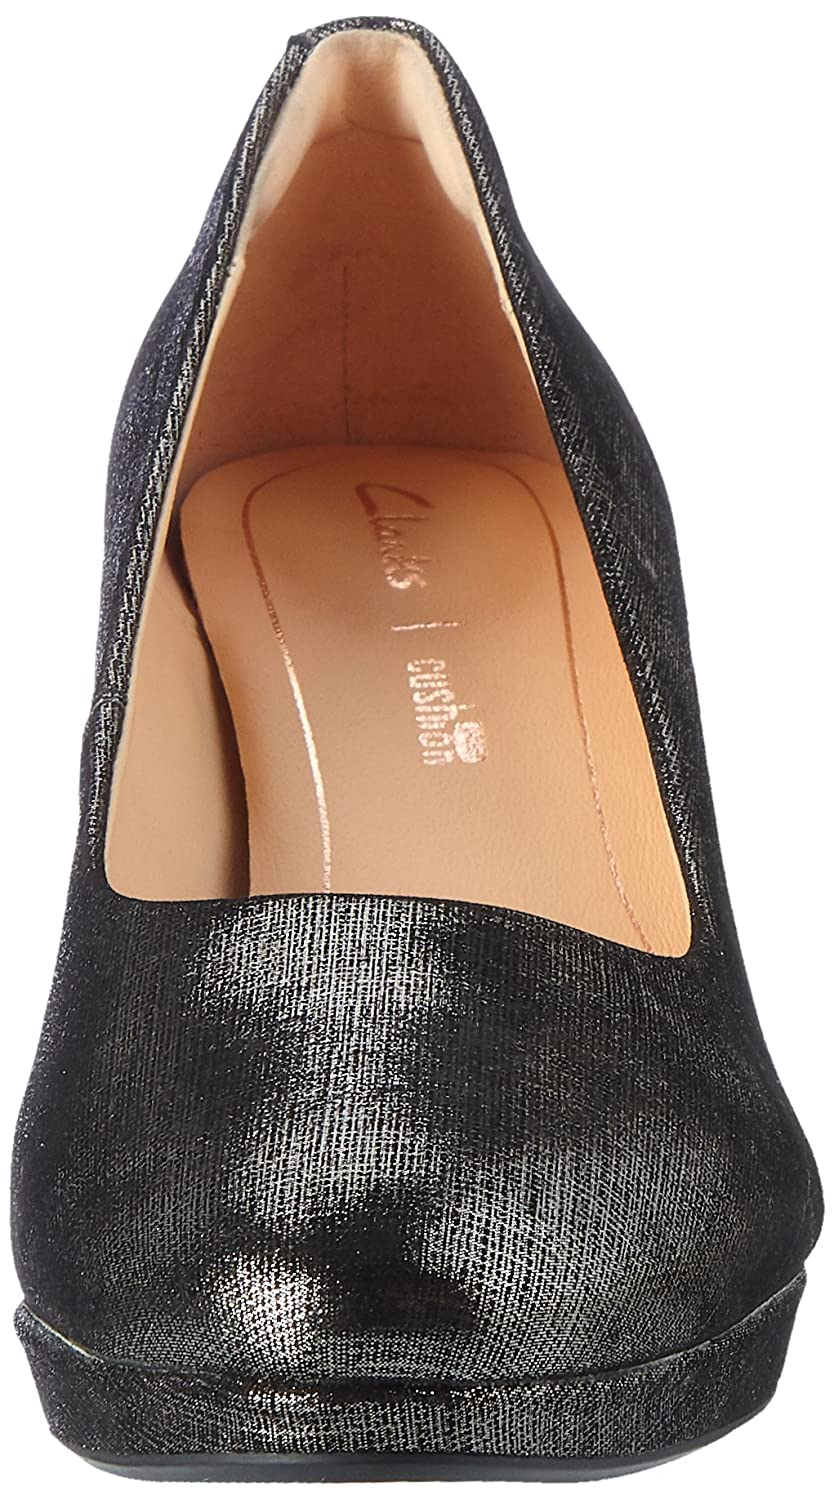 Clarks Damen Pumps Kelda Hope Pumps Damen Beige (Pewter Metallic) 0067d3